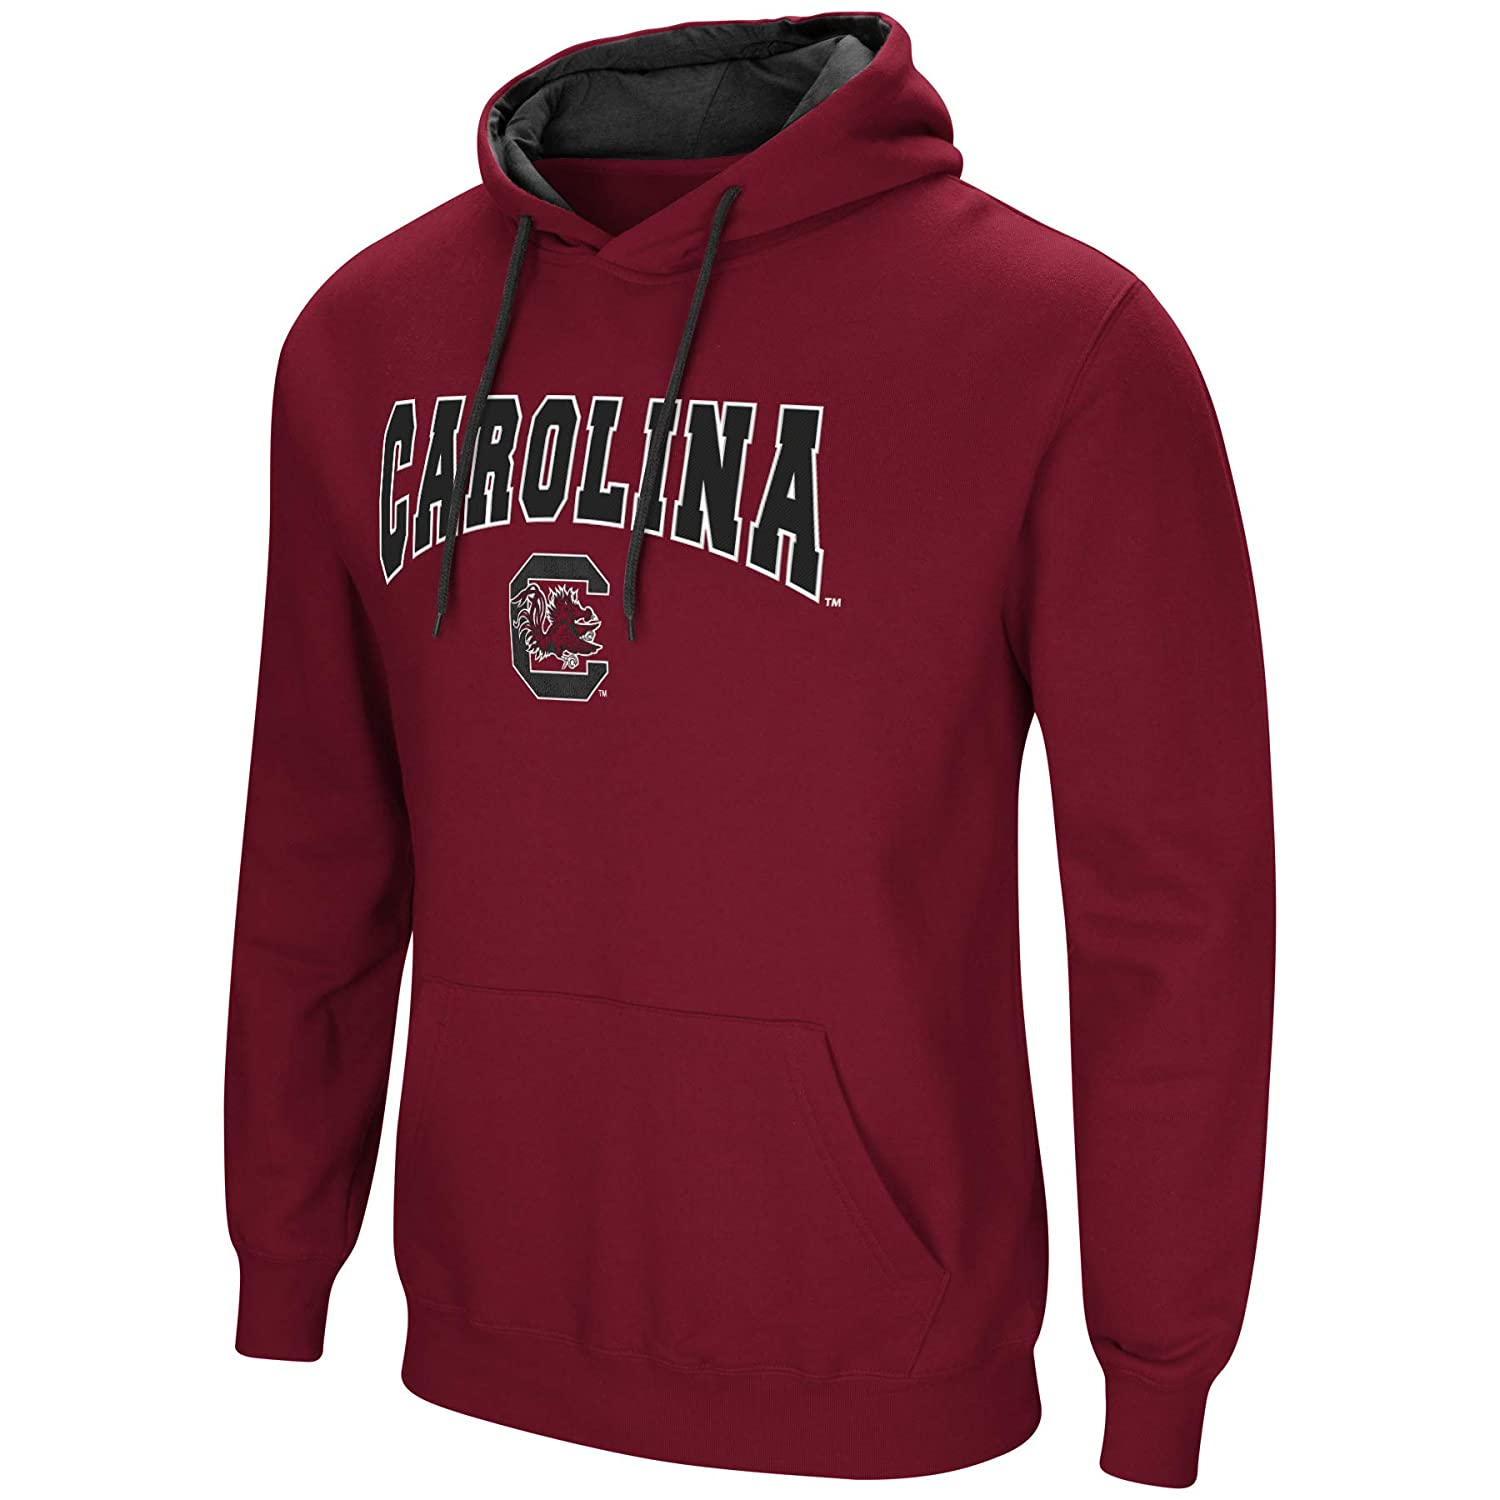 b56e2281 Amazon.com : Colosseum NCAA Men's-Cold Streak-Dual Blend-Fleece Hoodie  Pullover Sweatshirt with Tackle Twill Embroidered Team Name and Logo-Team  Colors : ...